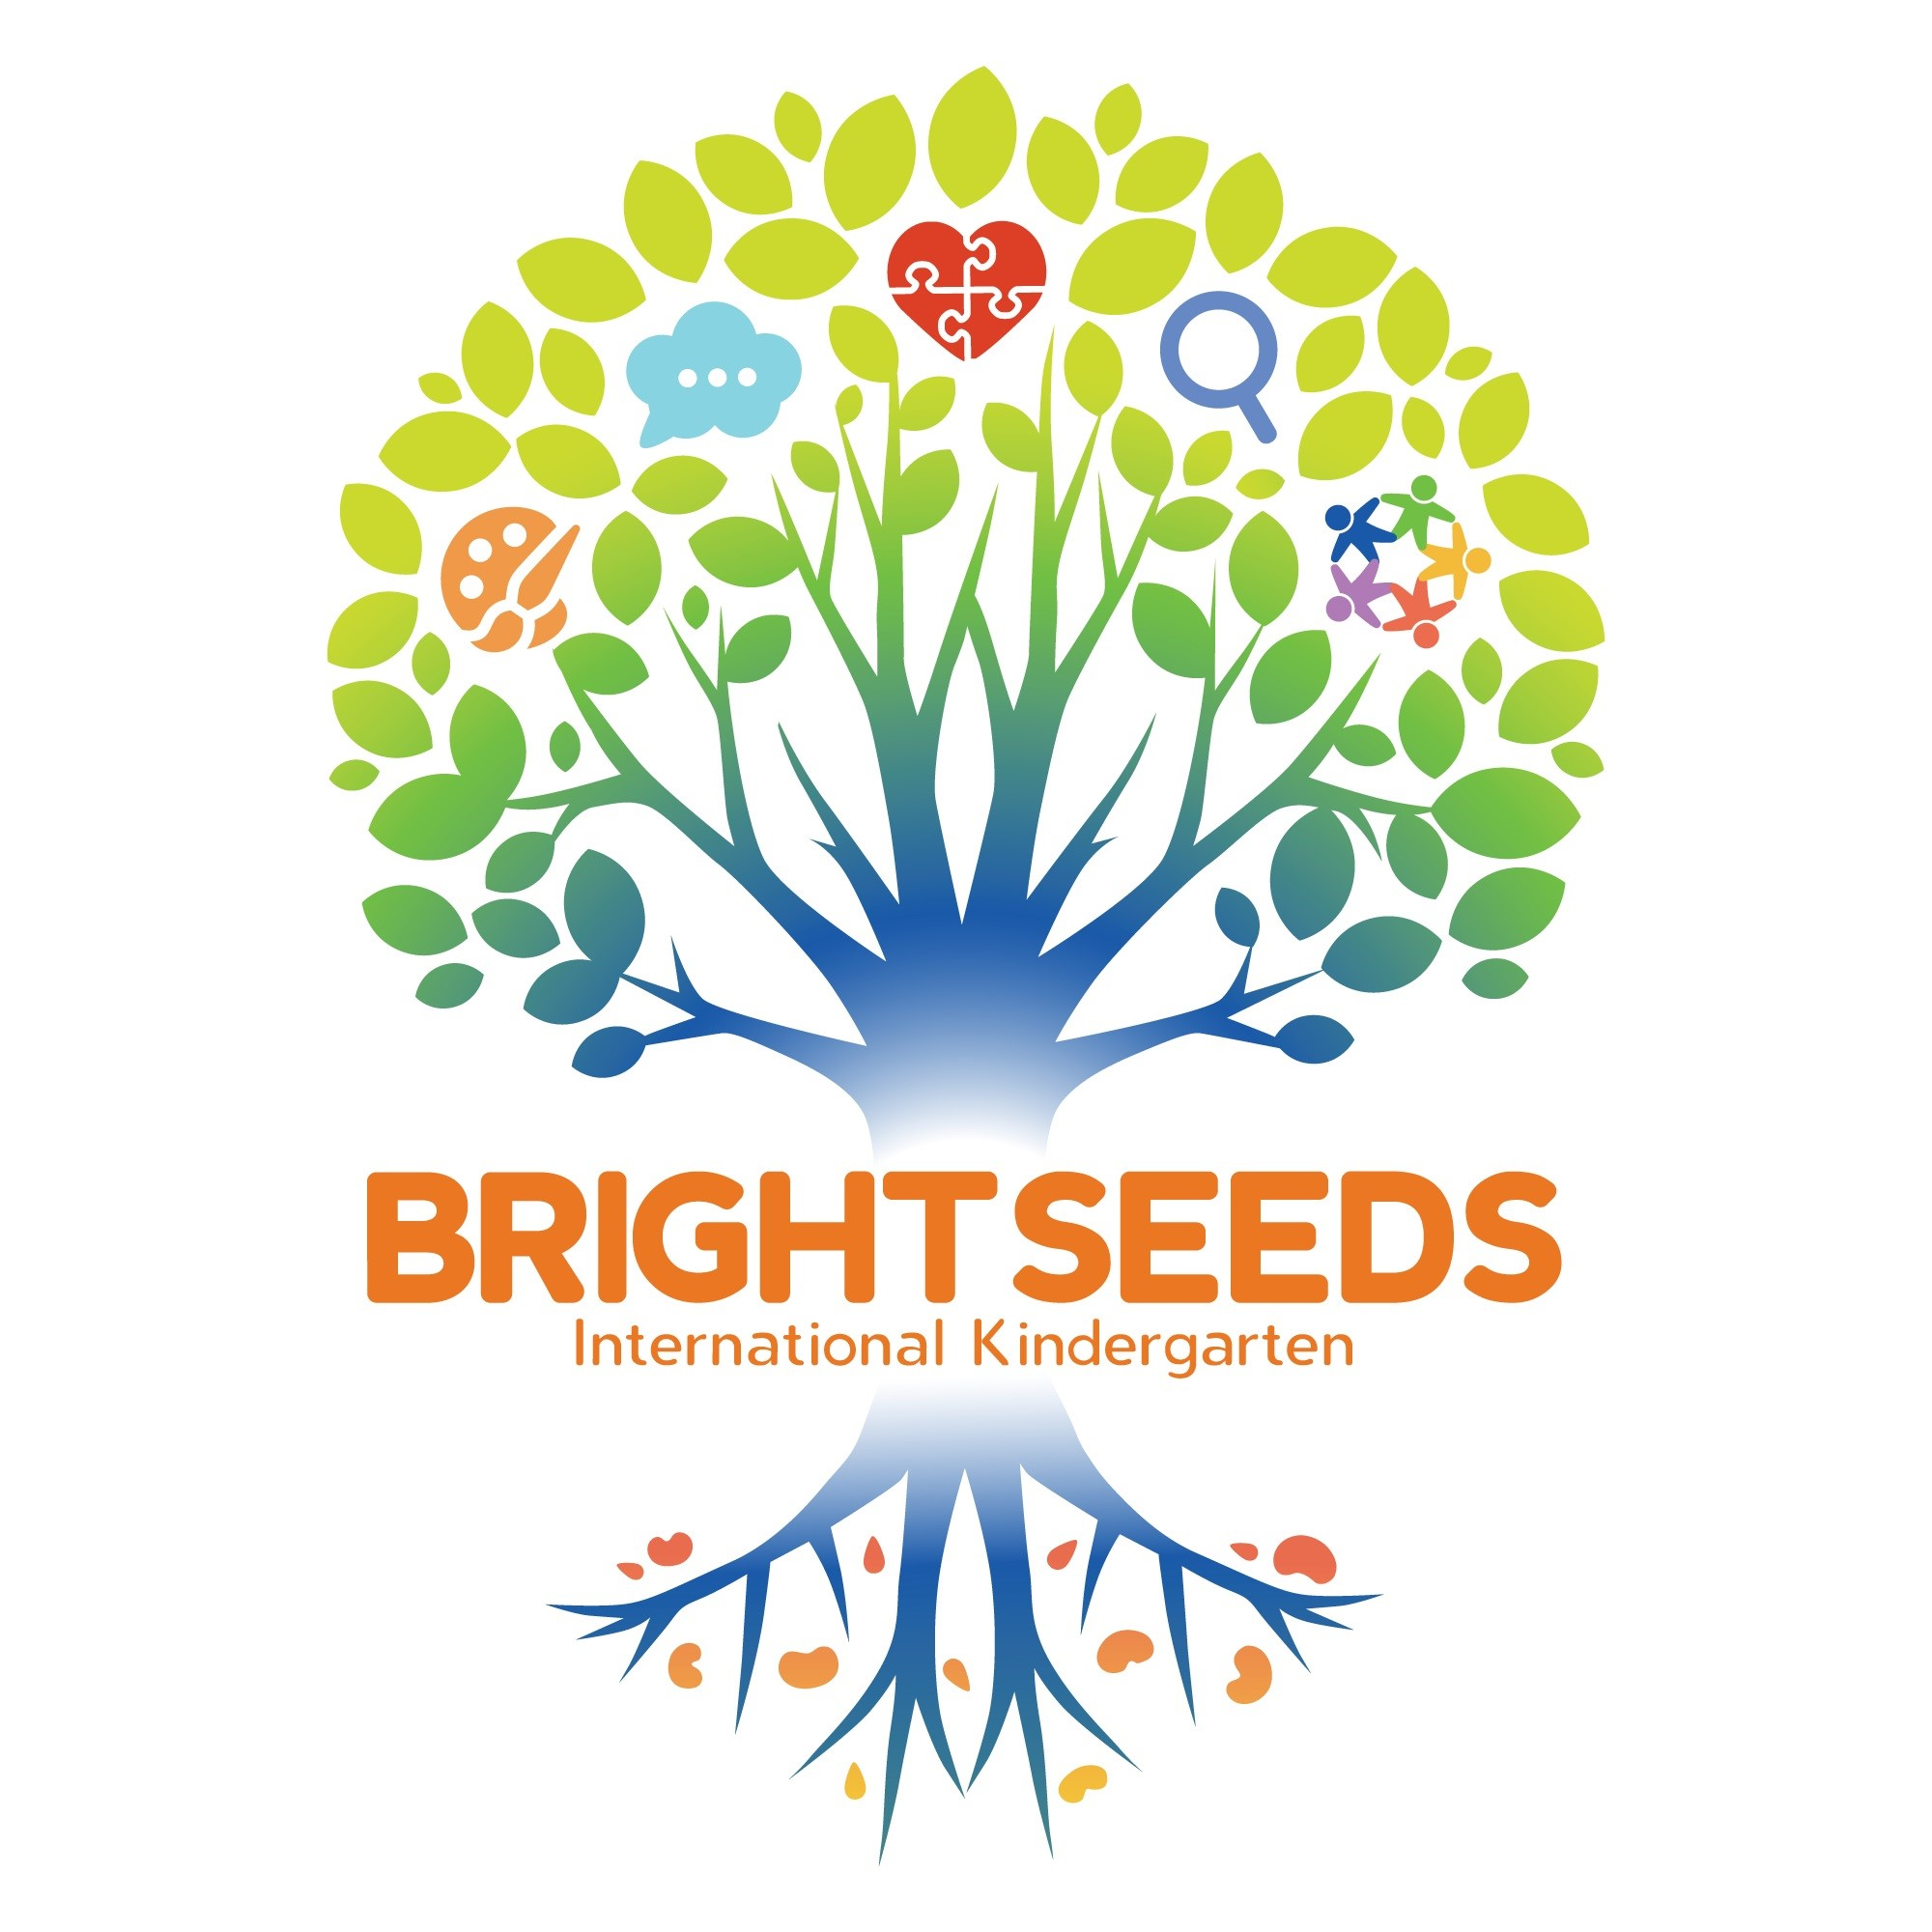 Bright Seeds International Kindergarten的主页标志